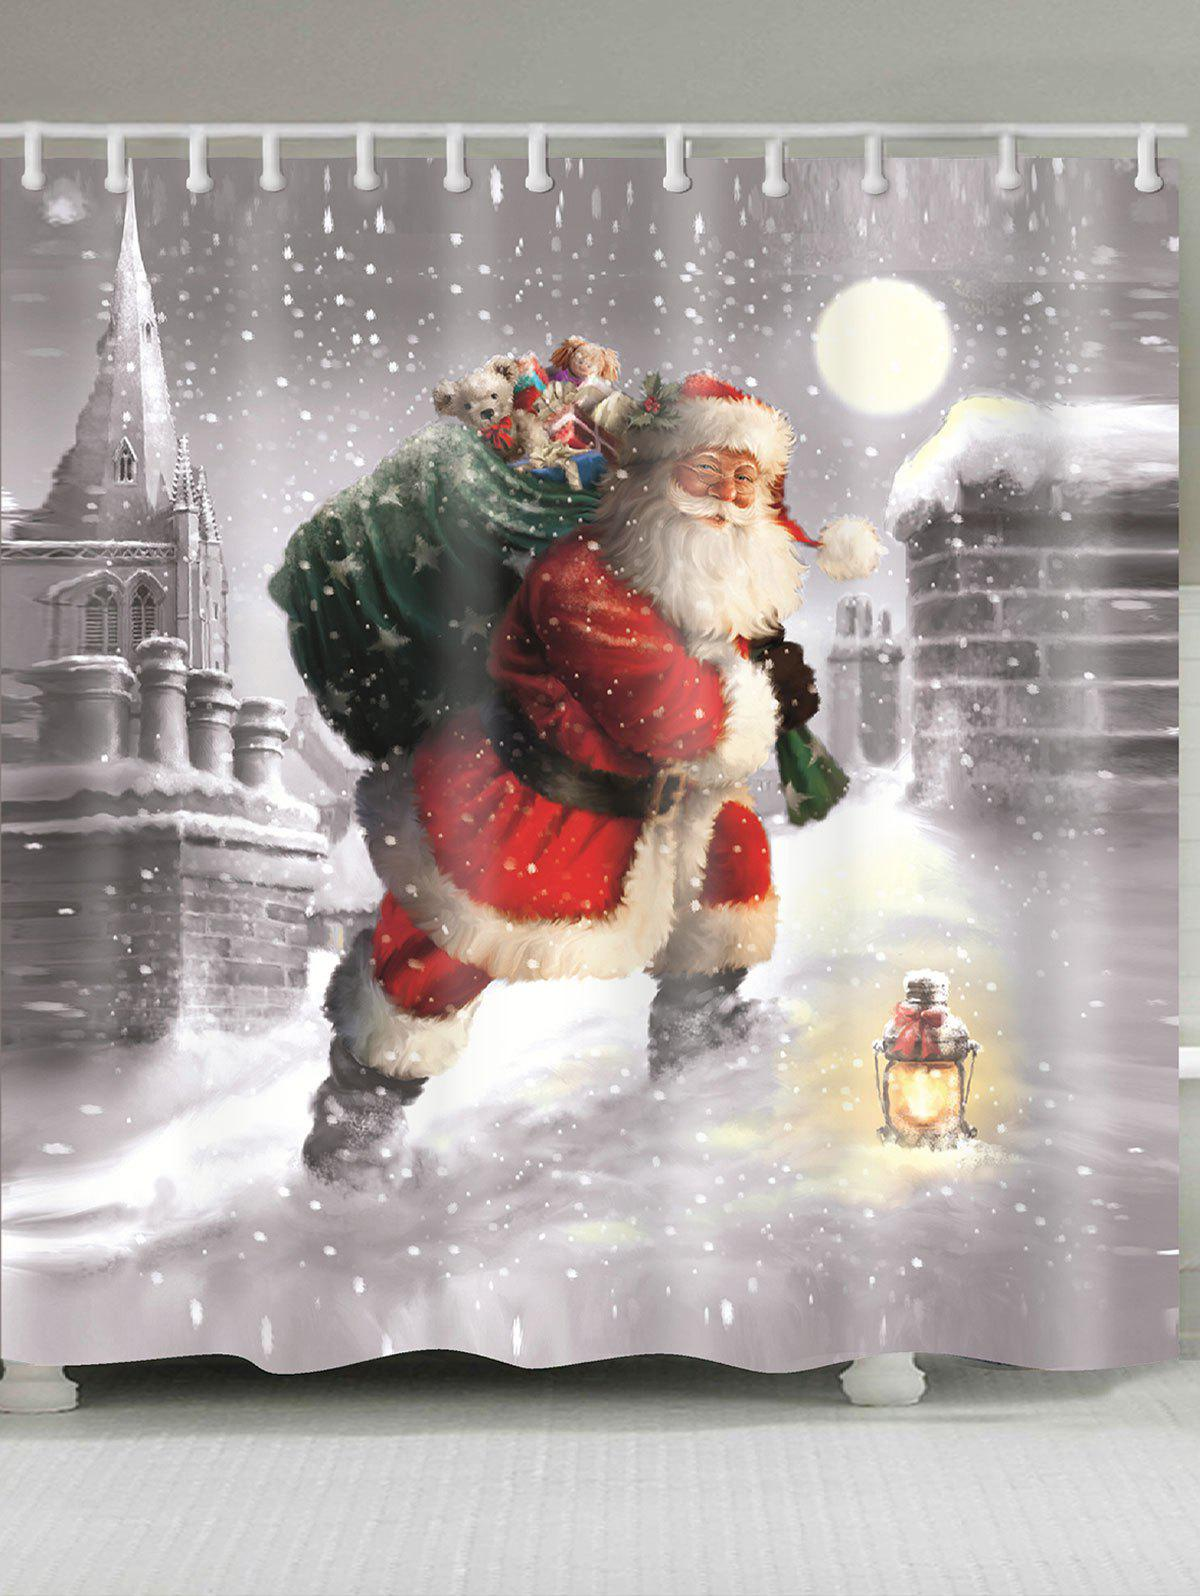 Waterproof Snow and Santa Claus Pattern Shower CurtainHOME<br><br>Size: W71 INCH * L79 INCH; Color: GRAY; Products Type: Shower Curtains; Materials: Polyester; Pattern: Santa Claus; Style: Festival; Number of Hook Holes: W59 inch*L71 inch: 10; W71 inch*L71 inch: 12; W71 inch*L79 inch: 12; Package Contents: 1 x Shower Curtain 1 x Hooks (Set);